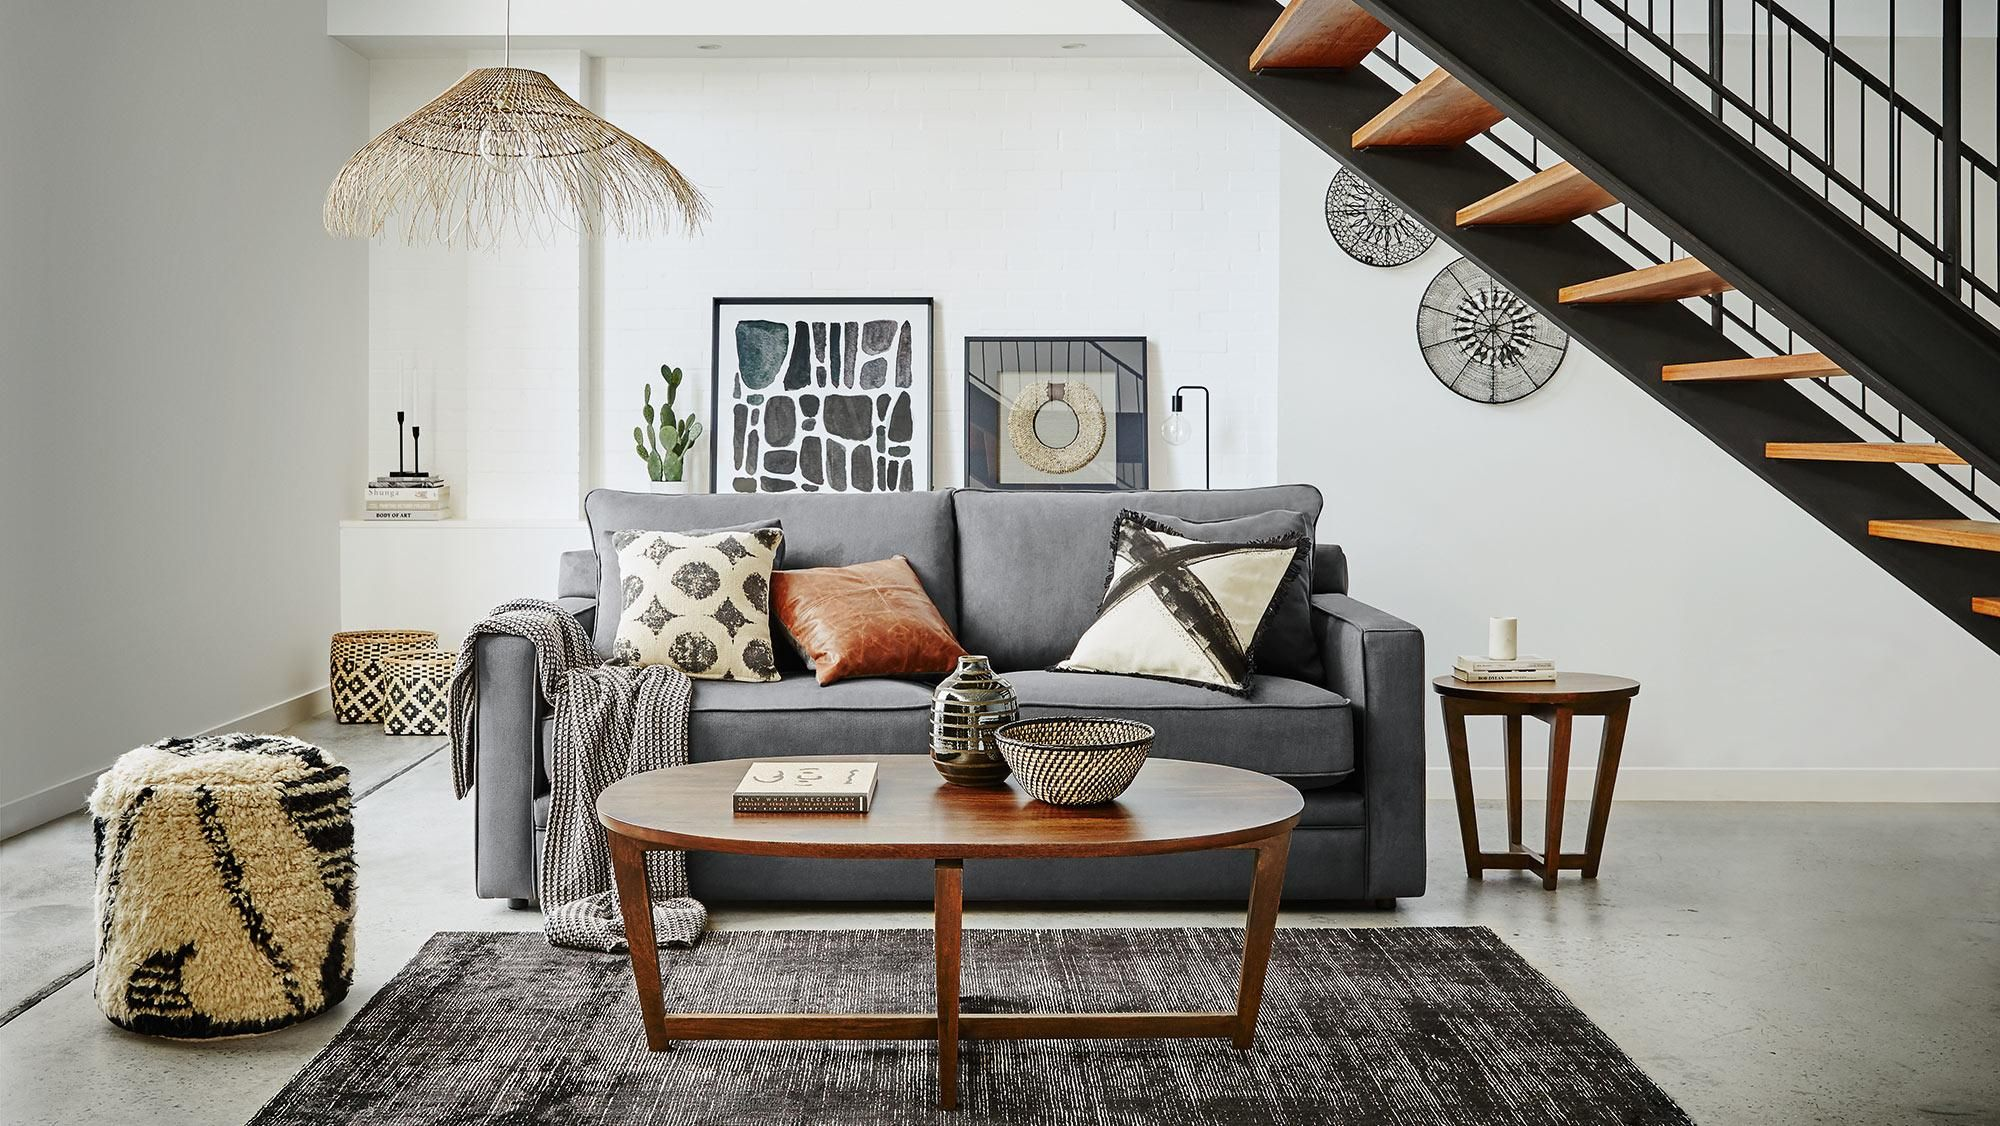 How to style a living room successfully | Cheap home decor ...